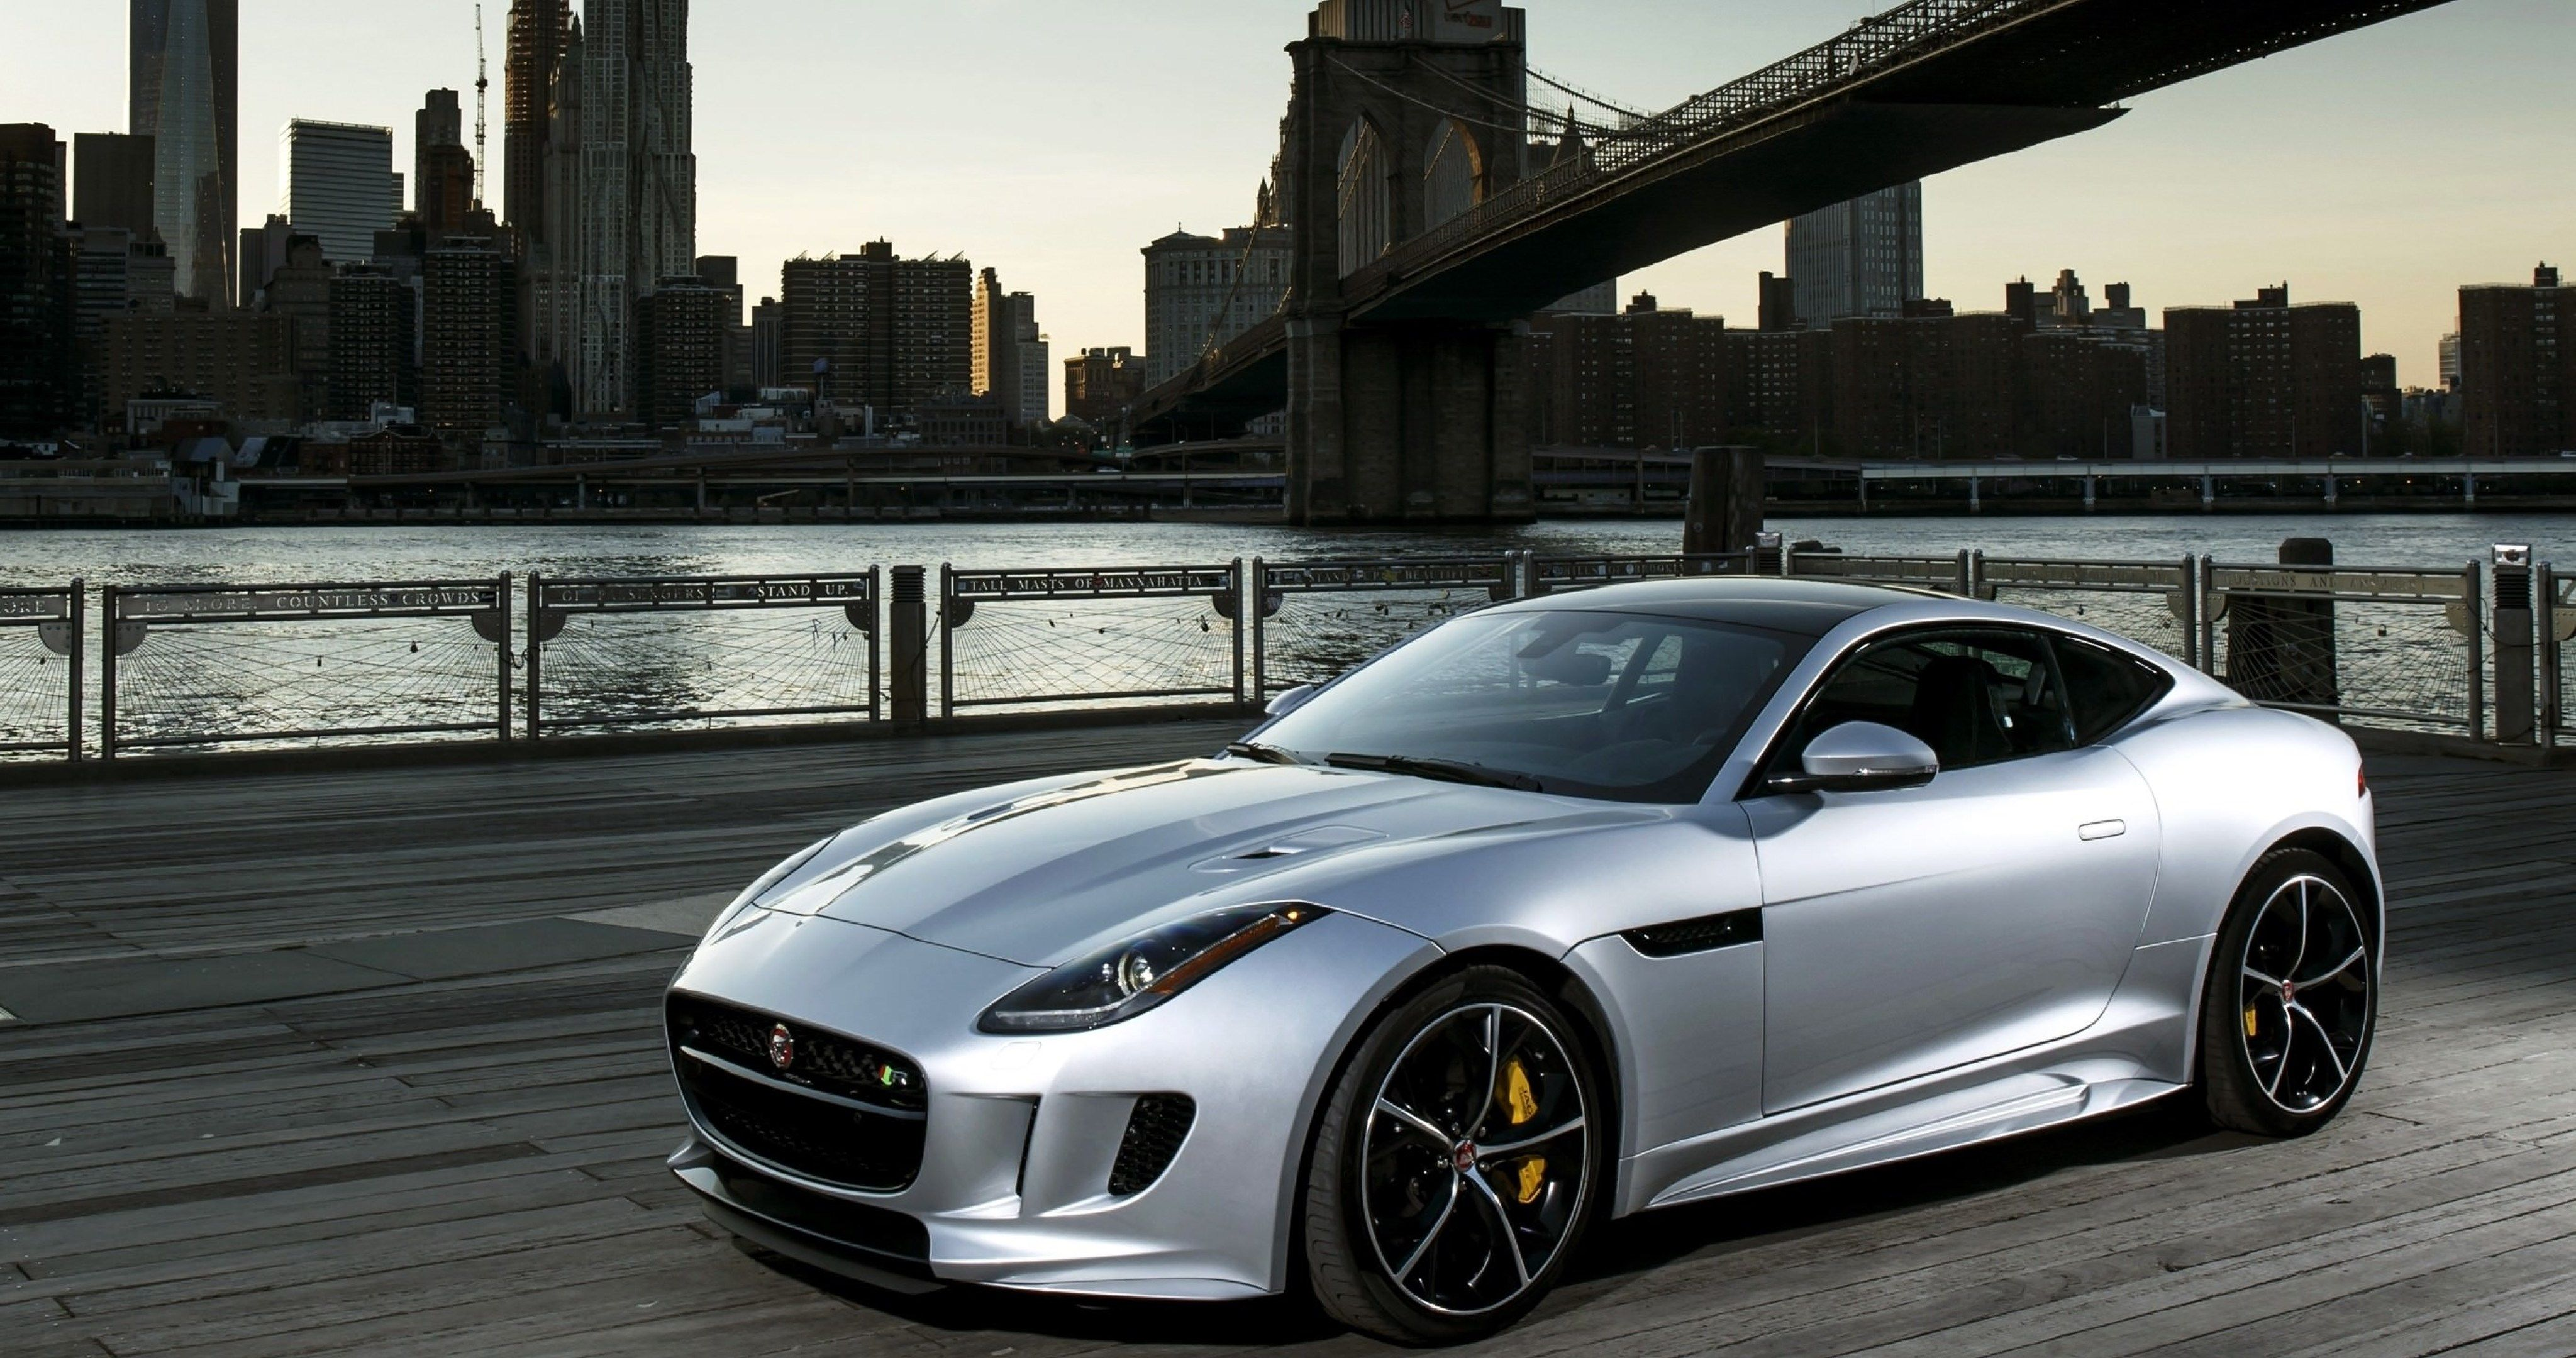 jaguar f type r 2015 4k ultra hd wallpapers » High quality walls